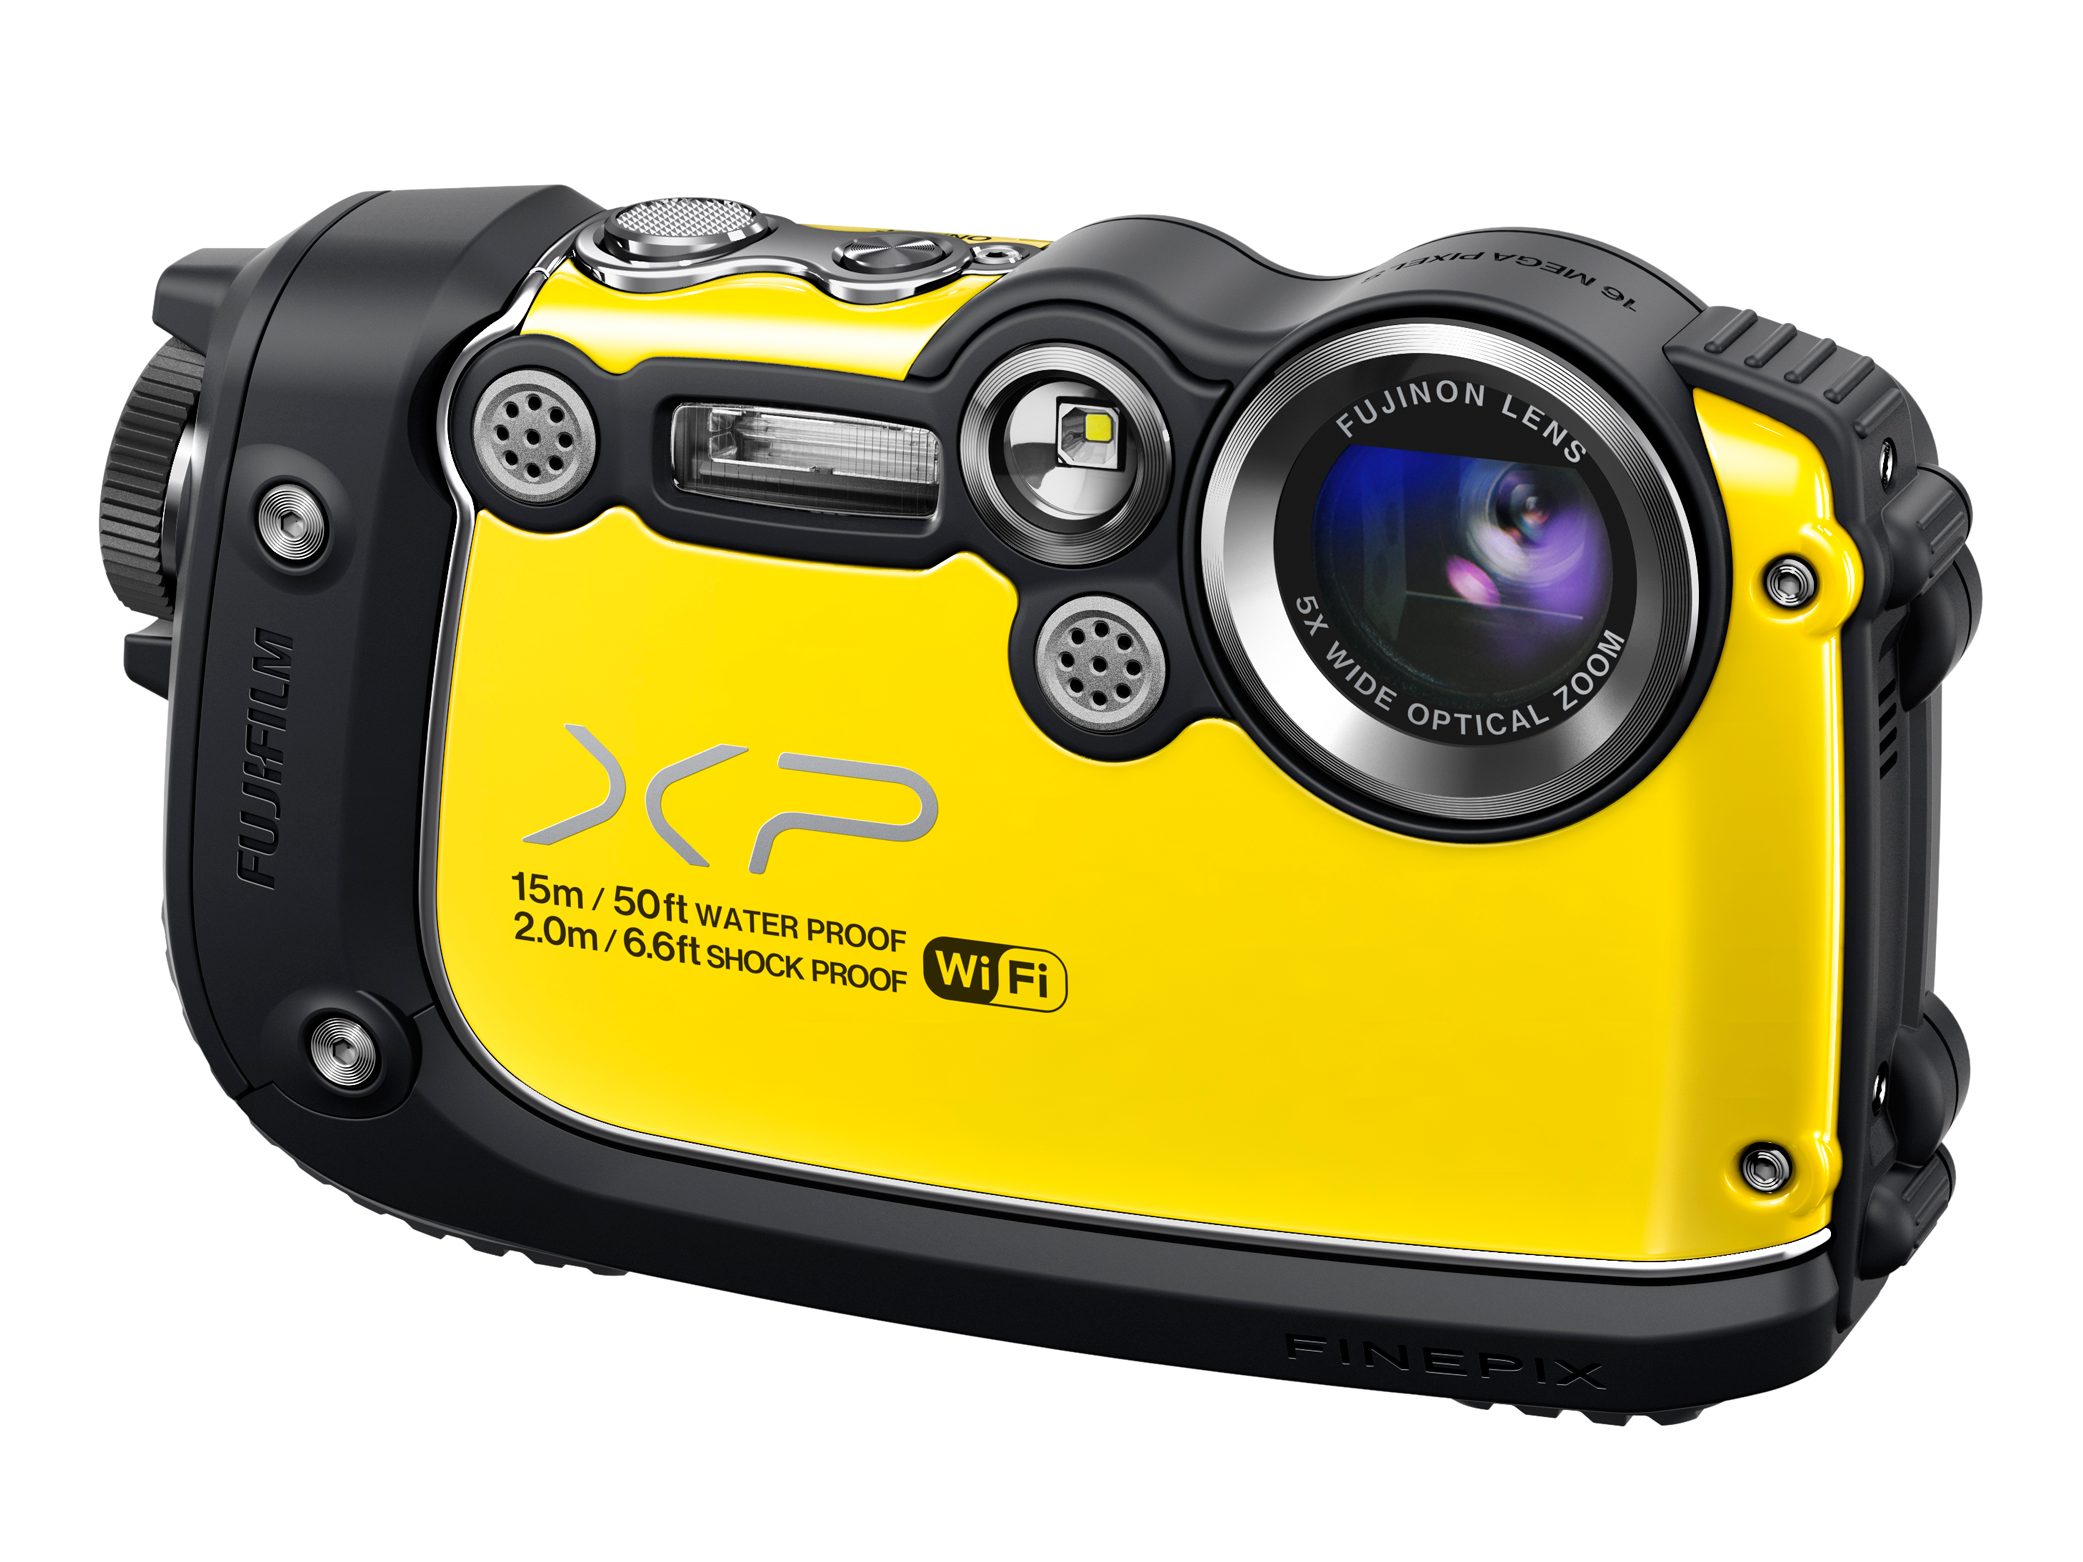 Xp200 Sets A New Standard For Rugged Cameras That Deliver Sharp Images In Any Environment